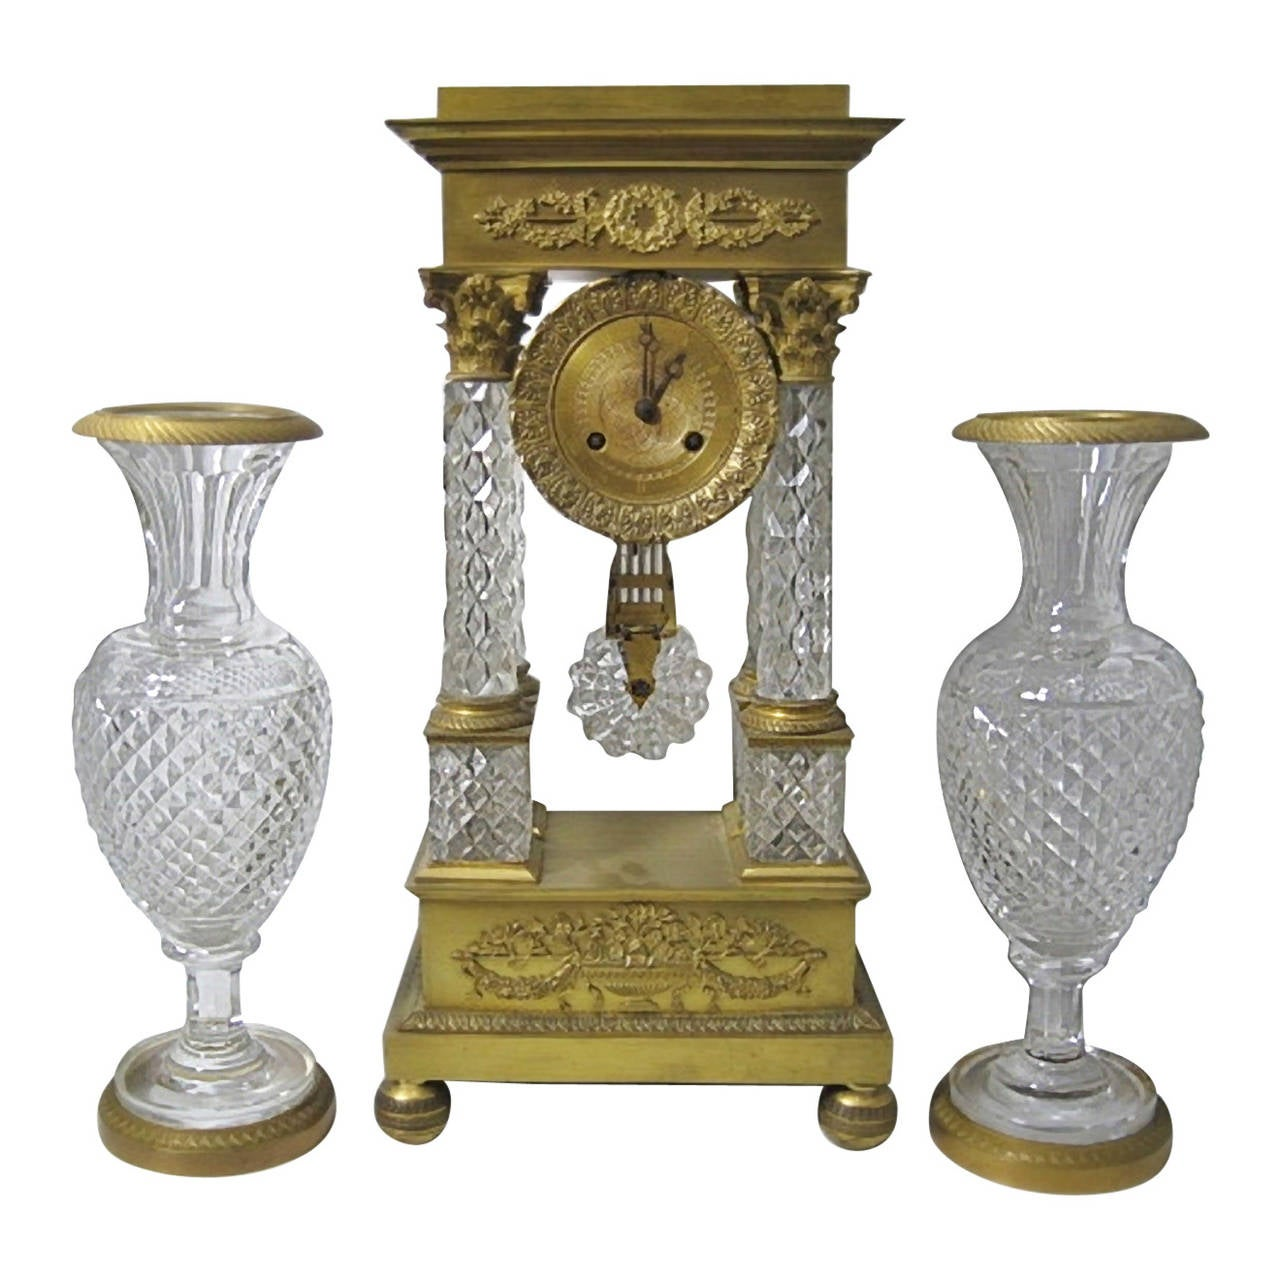 Baccarat Crystal Clock Garniture, French Empire With Gilt Bronze 1